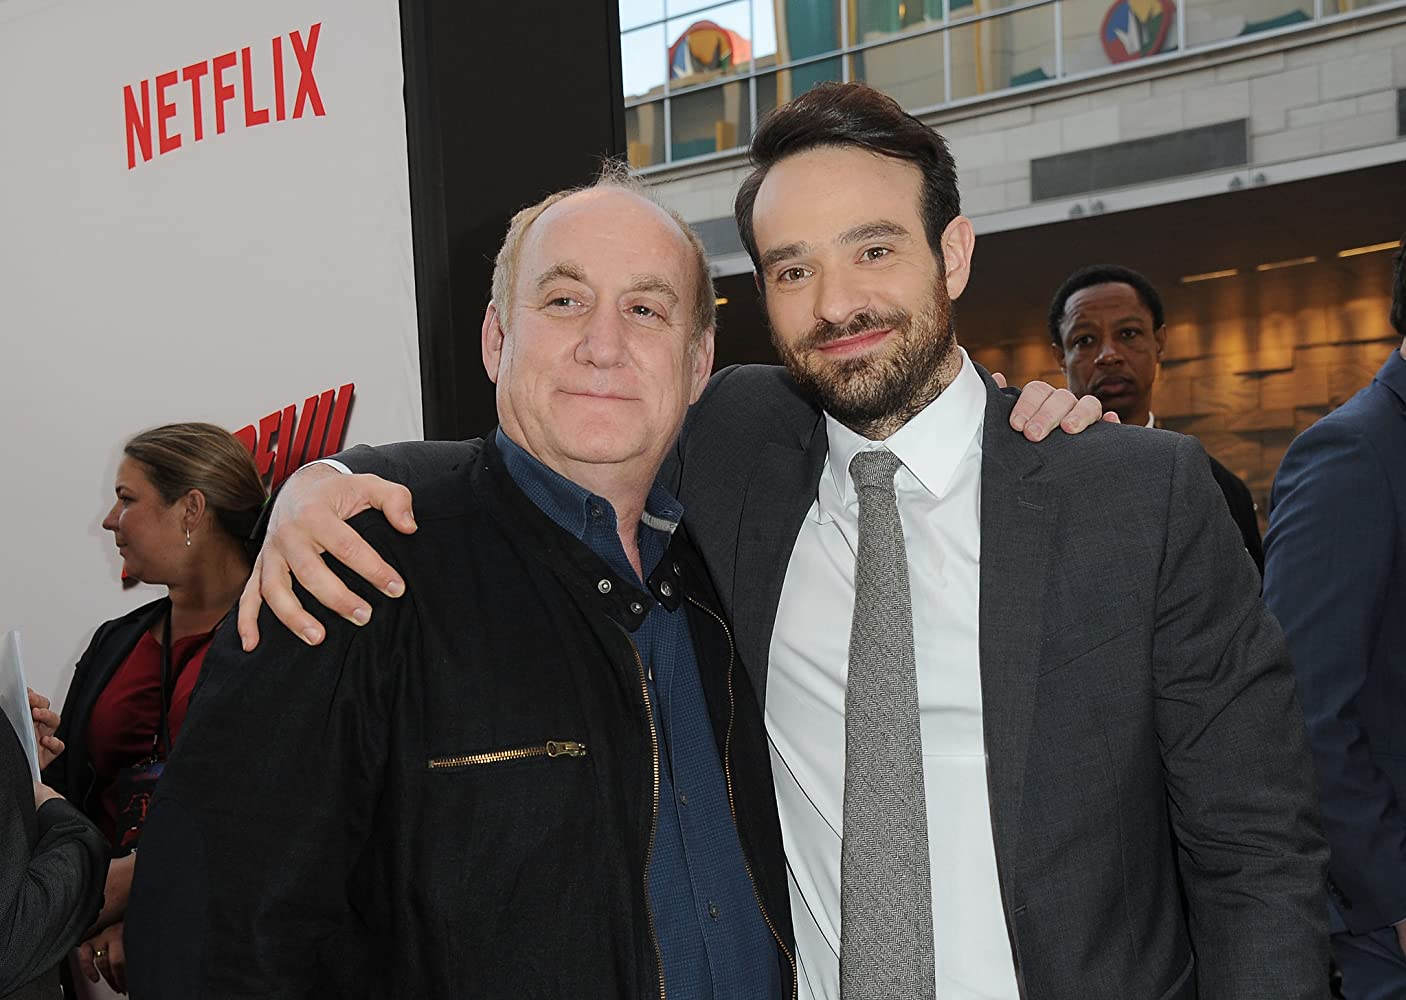 Jeph Loeb and Charlie cox